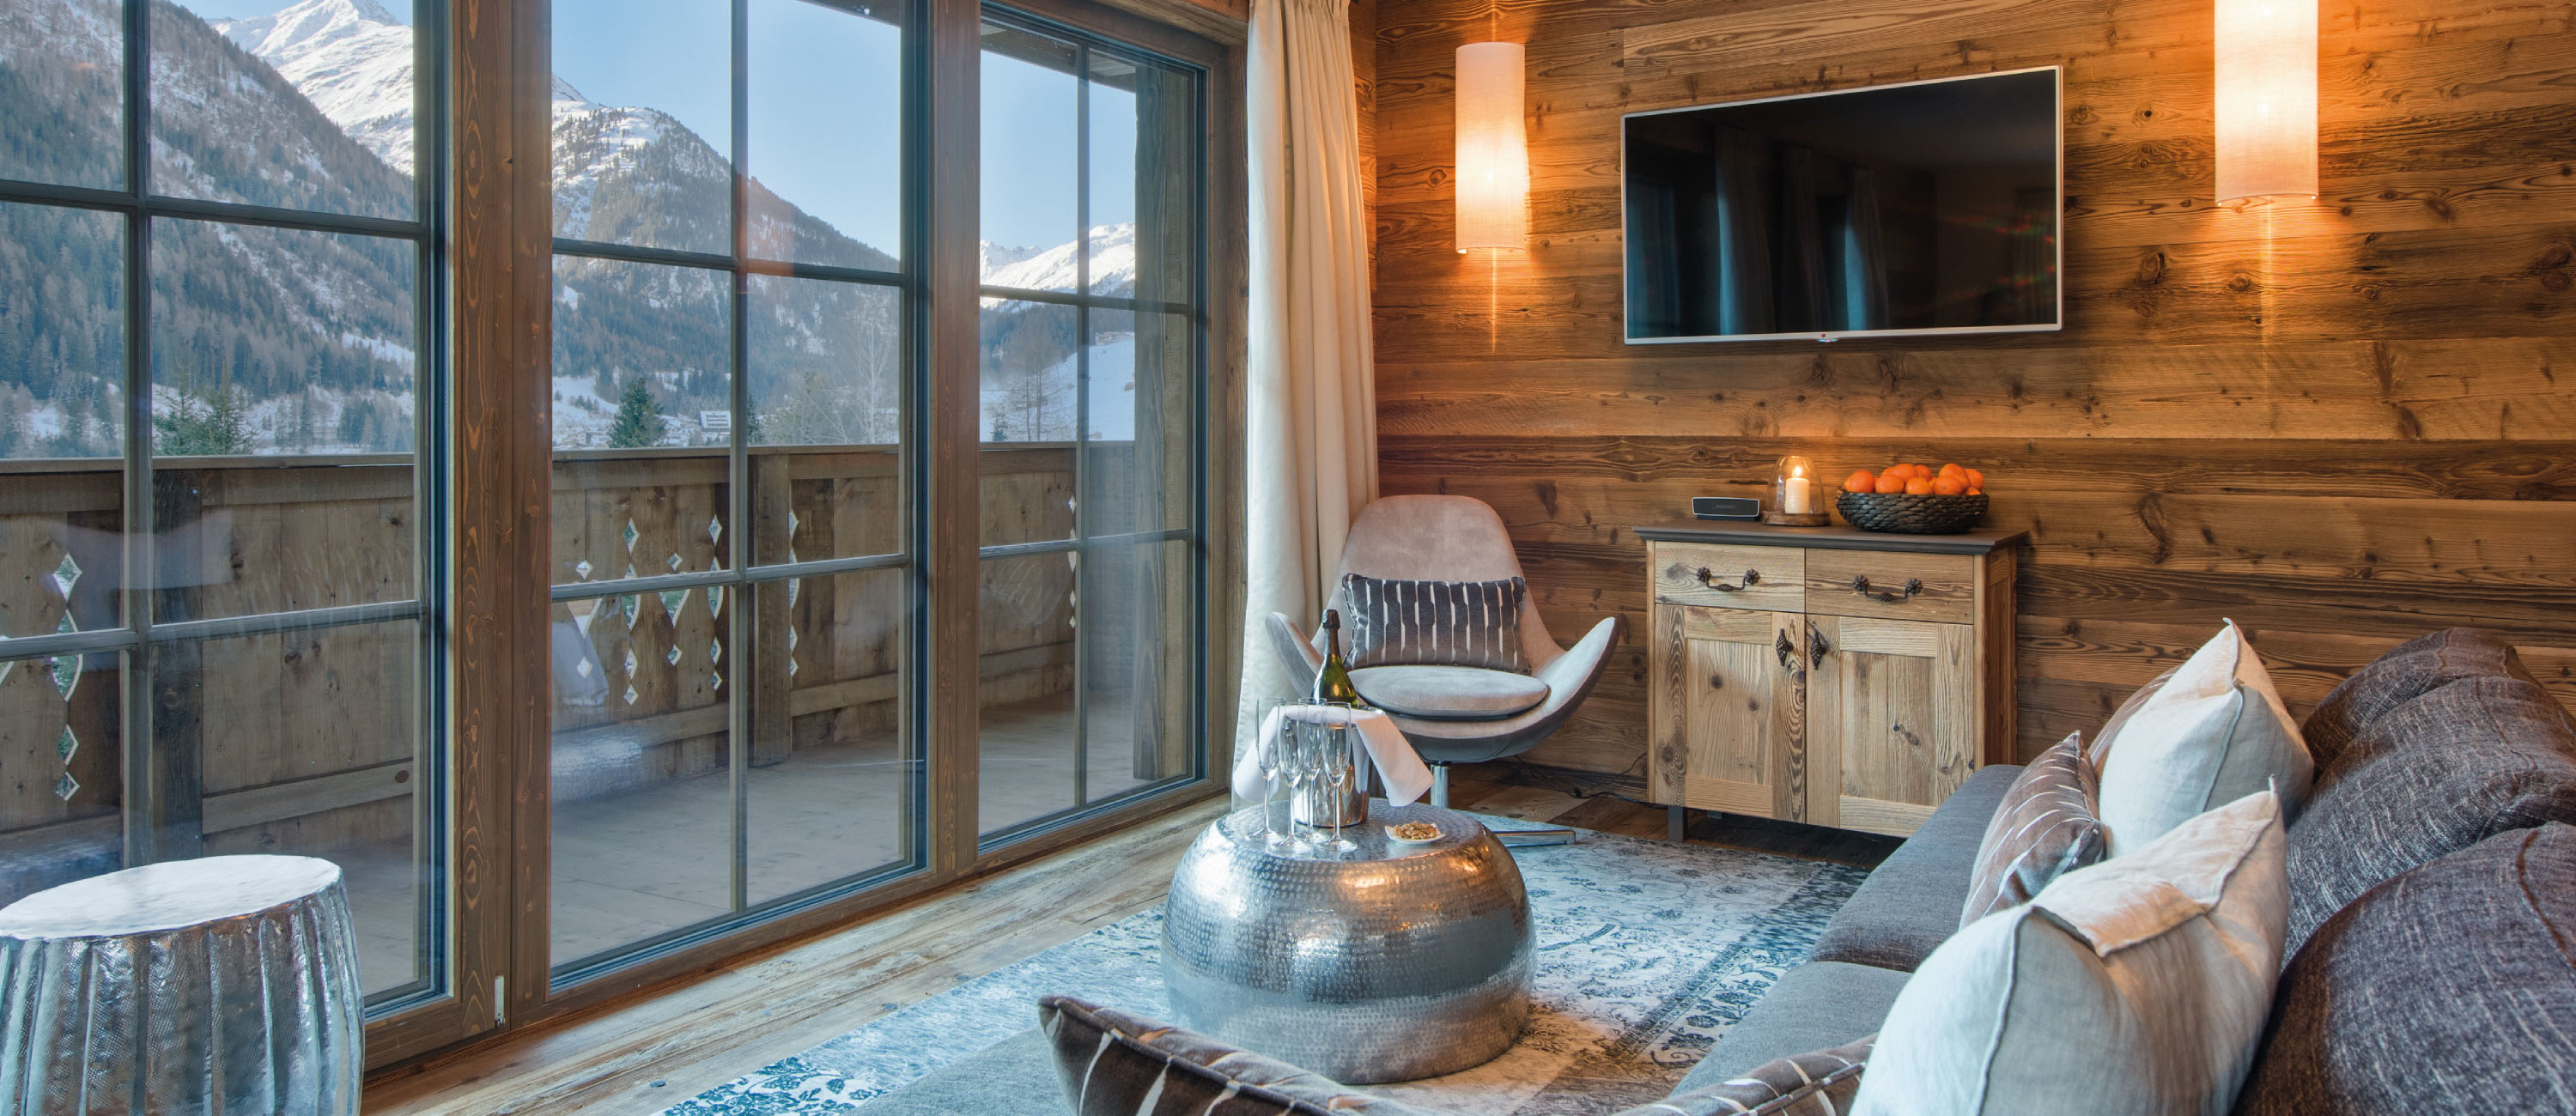 Chalet Ariane Living Room with Mountain Views - St Anton